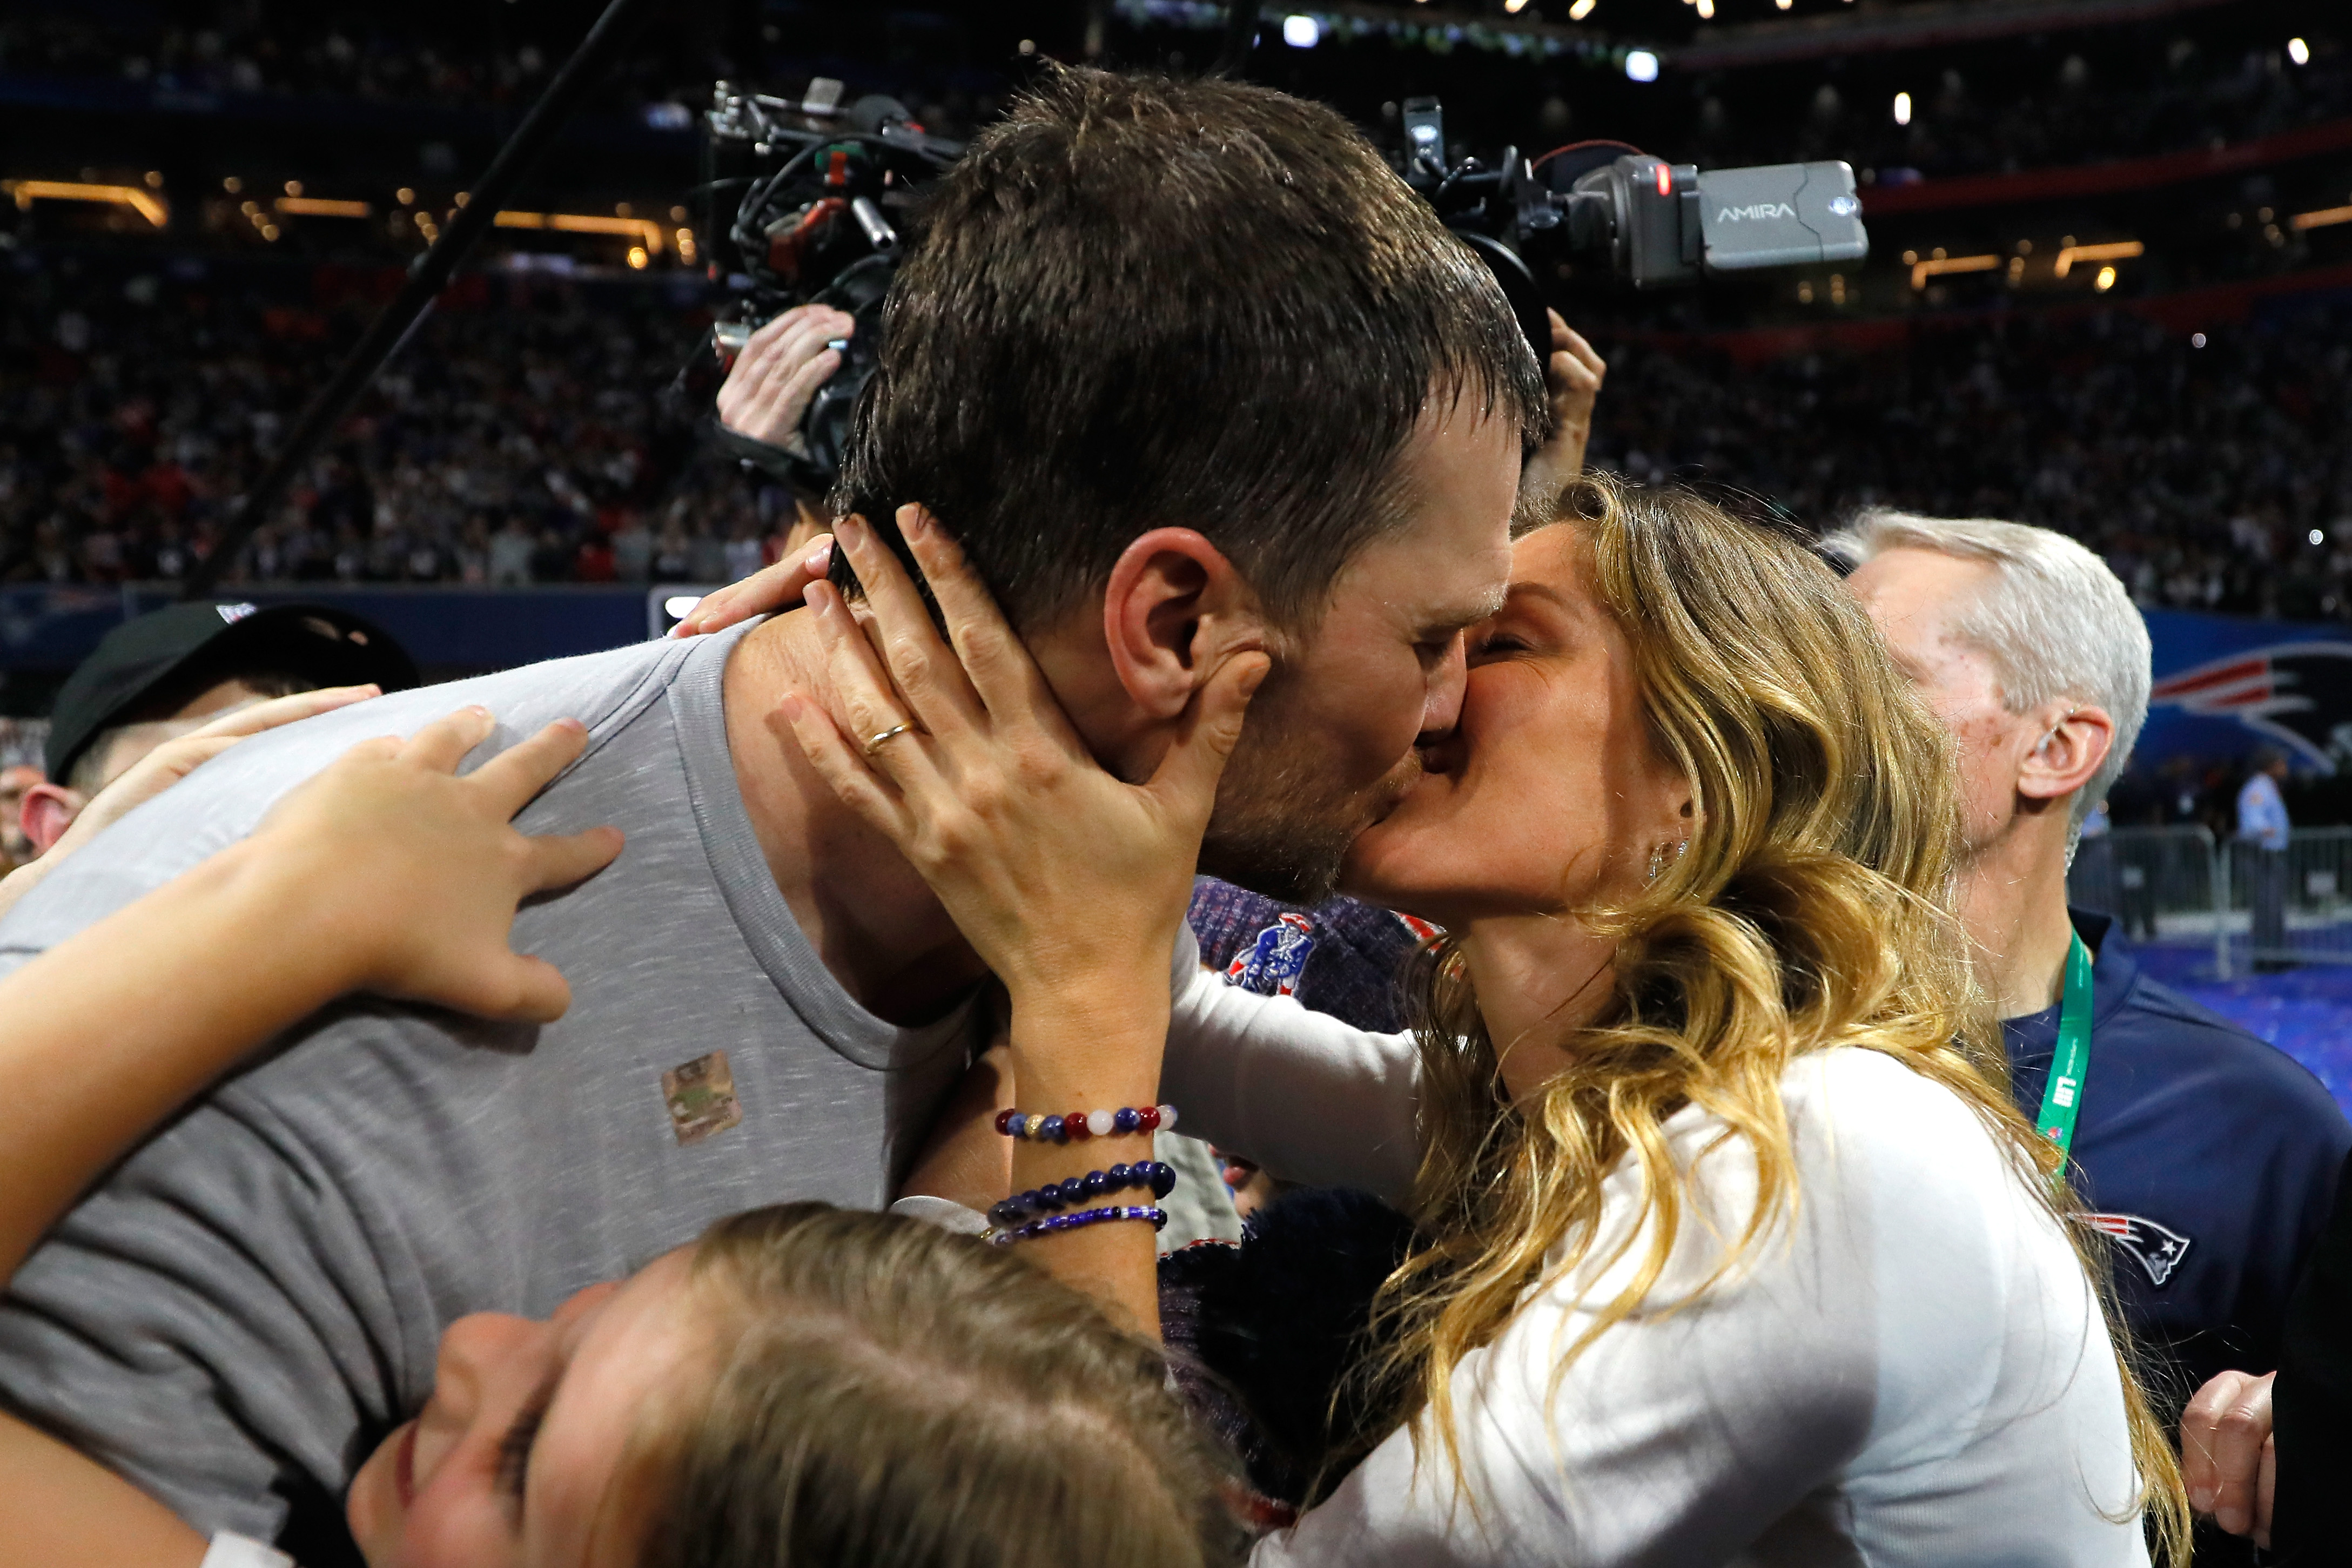 Leave Tom Brady S Mouth Kisses Alone Kqed